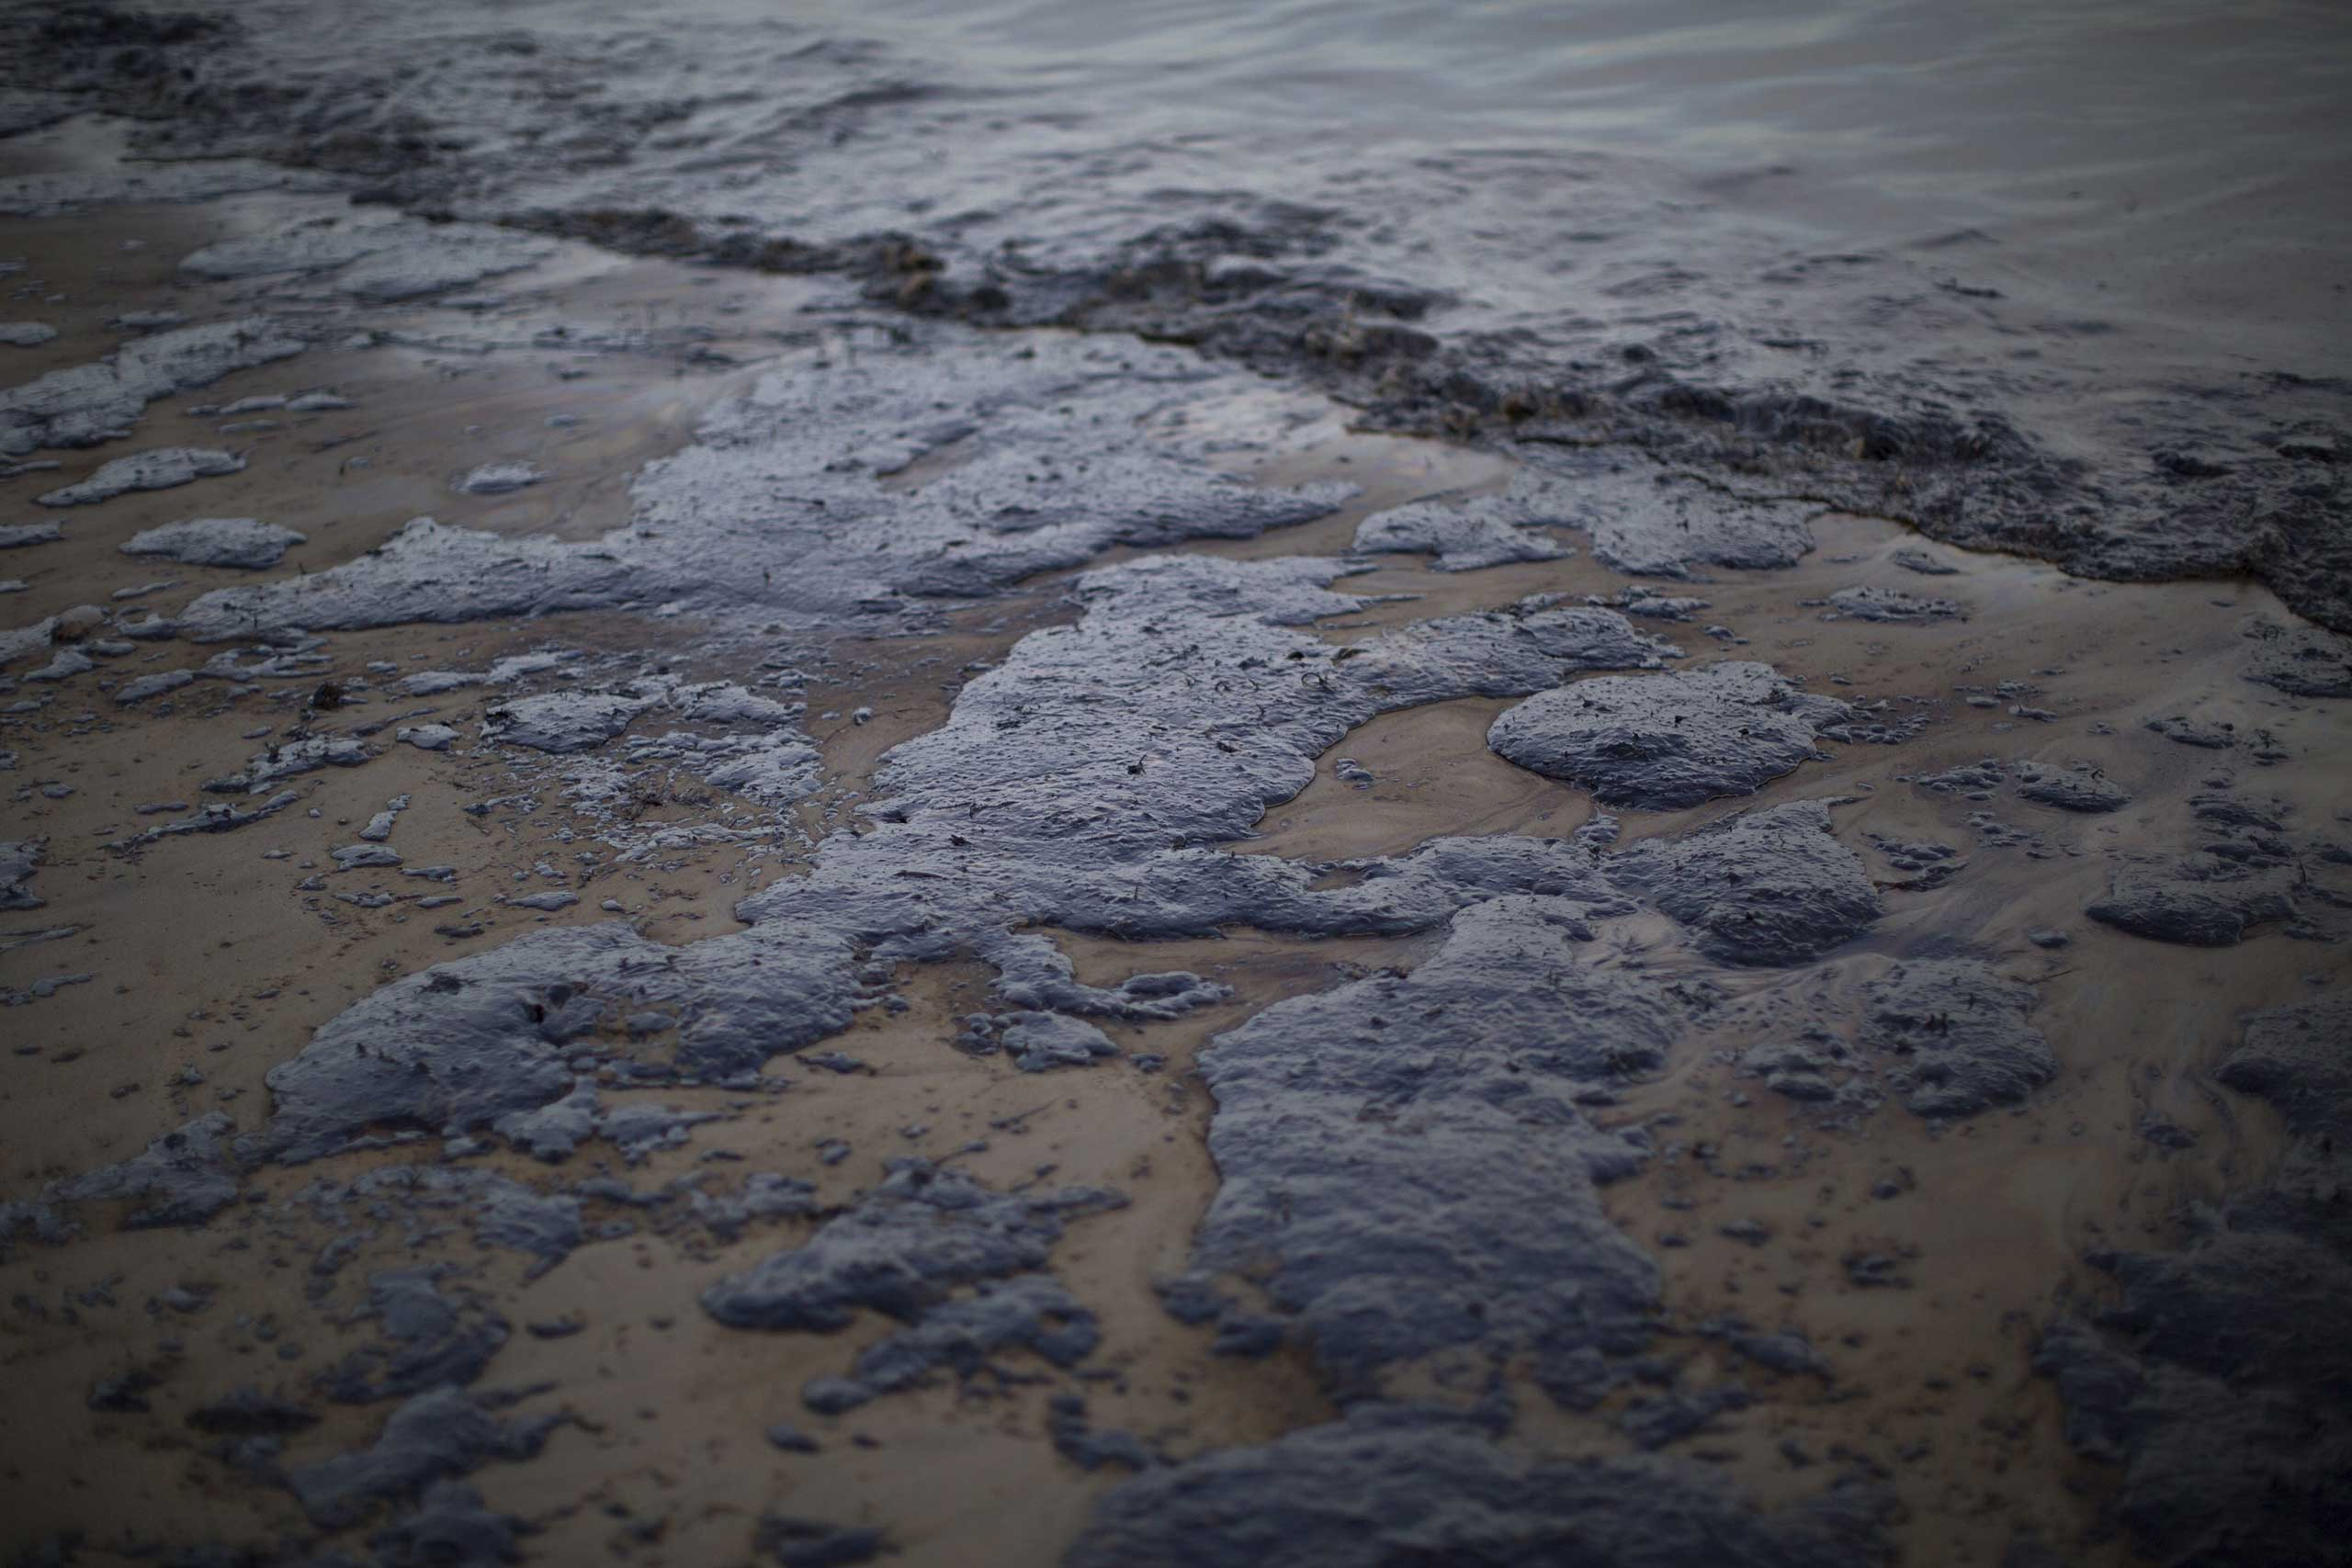 Spilled oil covers the coast at Refugio State Beach in Goleta, Calif. on May 19, 2015.